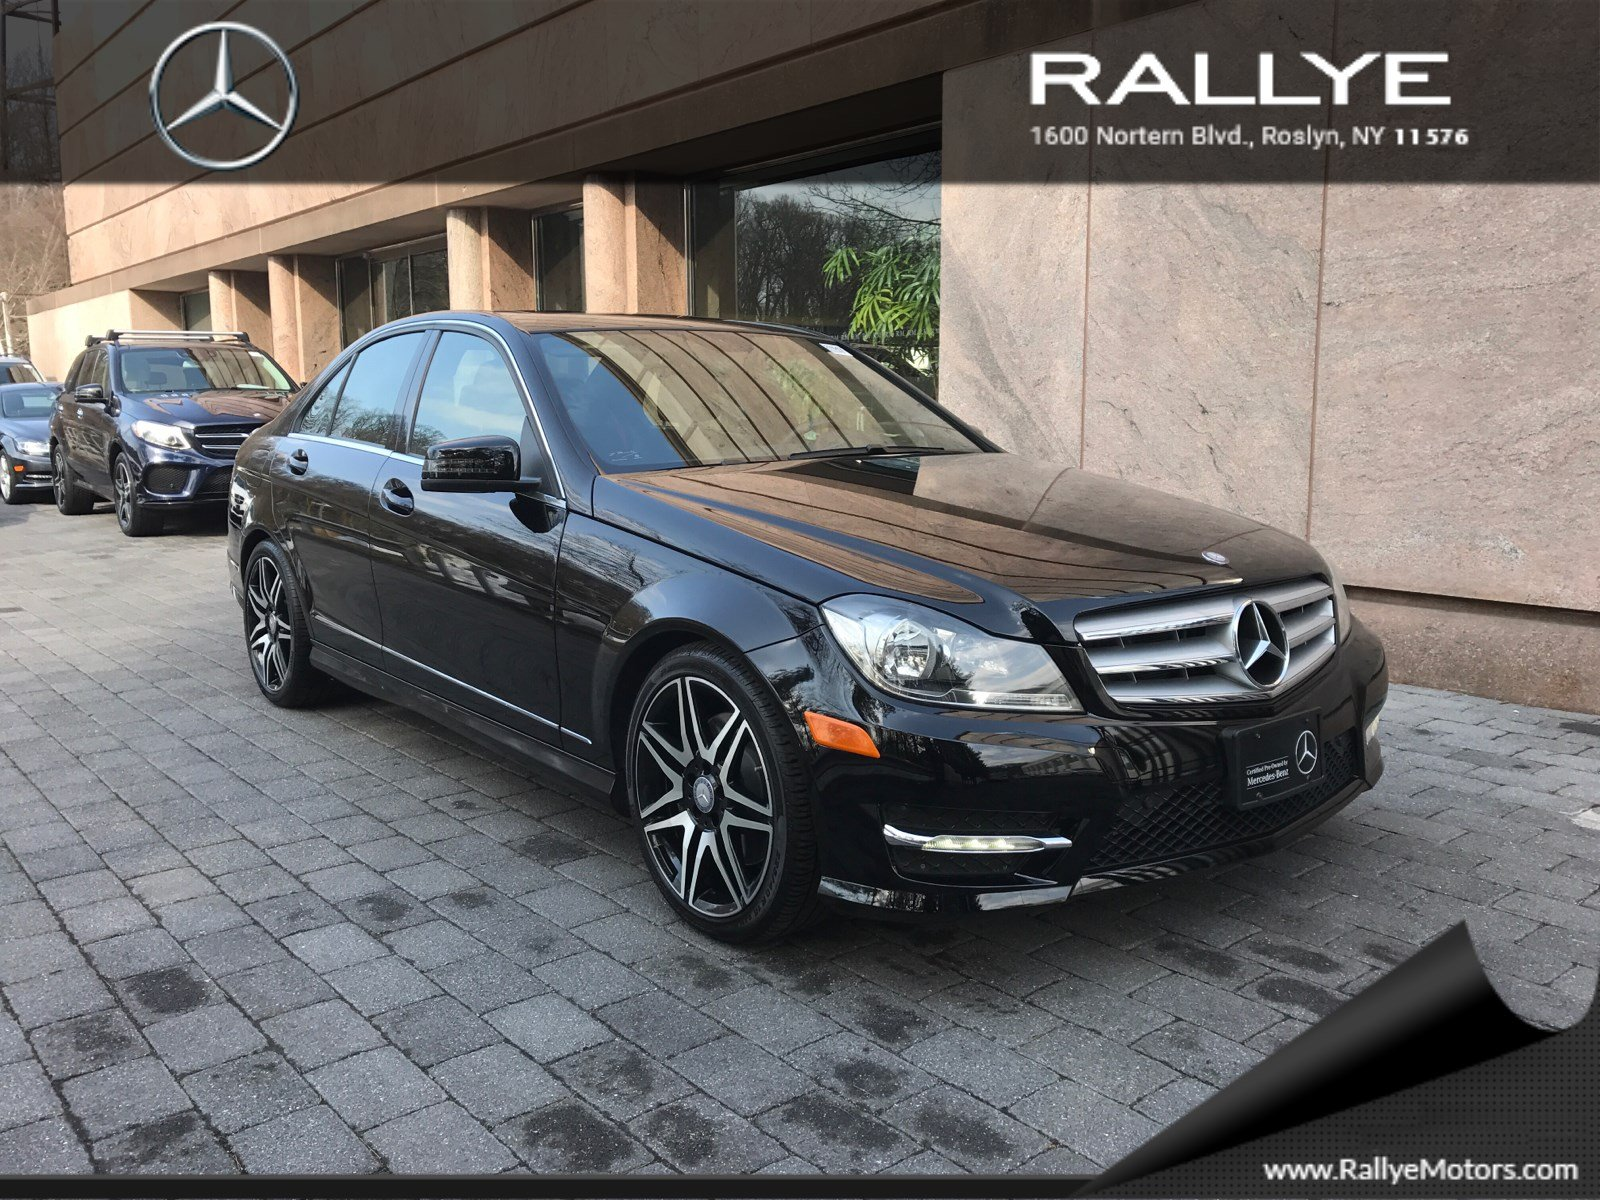 Pre owned 2013 mercedes benz c class c300 sport 4dr car in for Mercedes benz c class pre owned